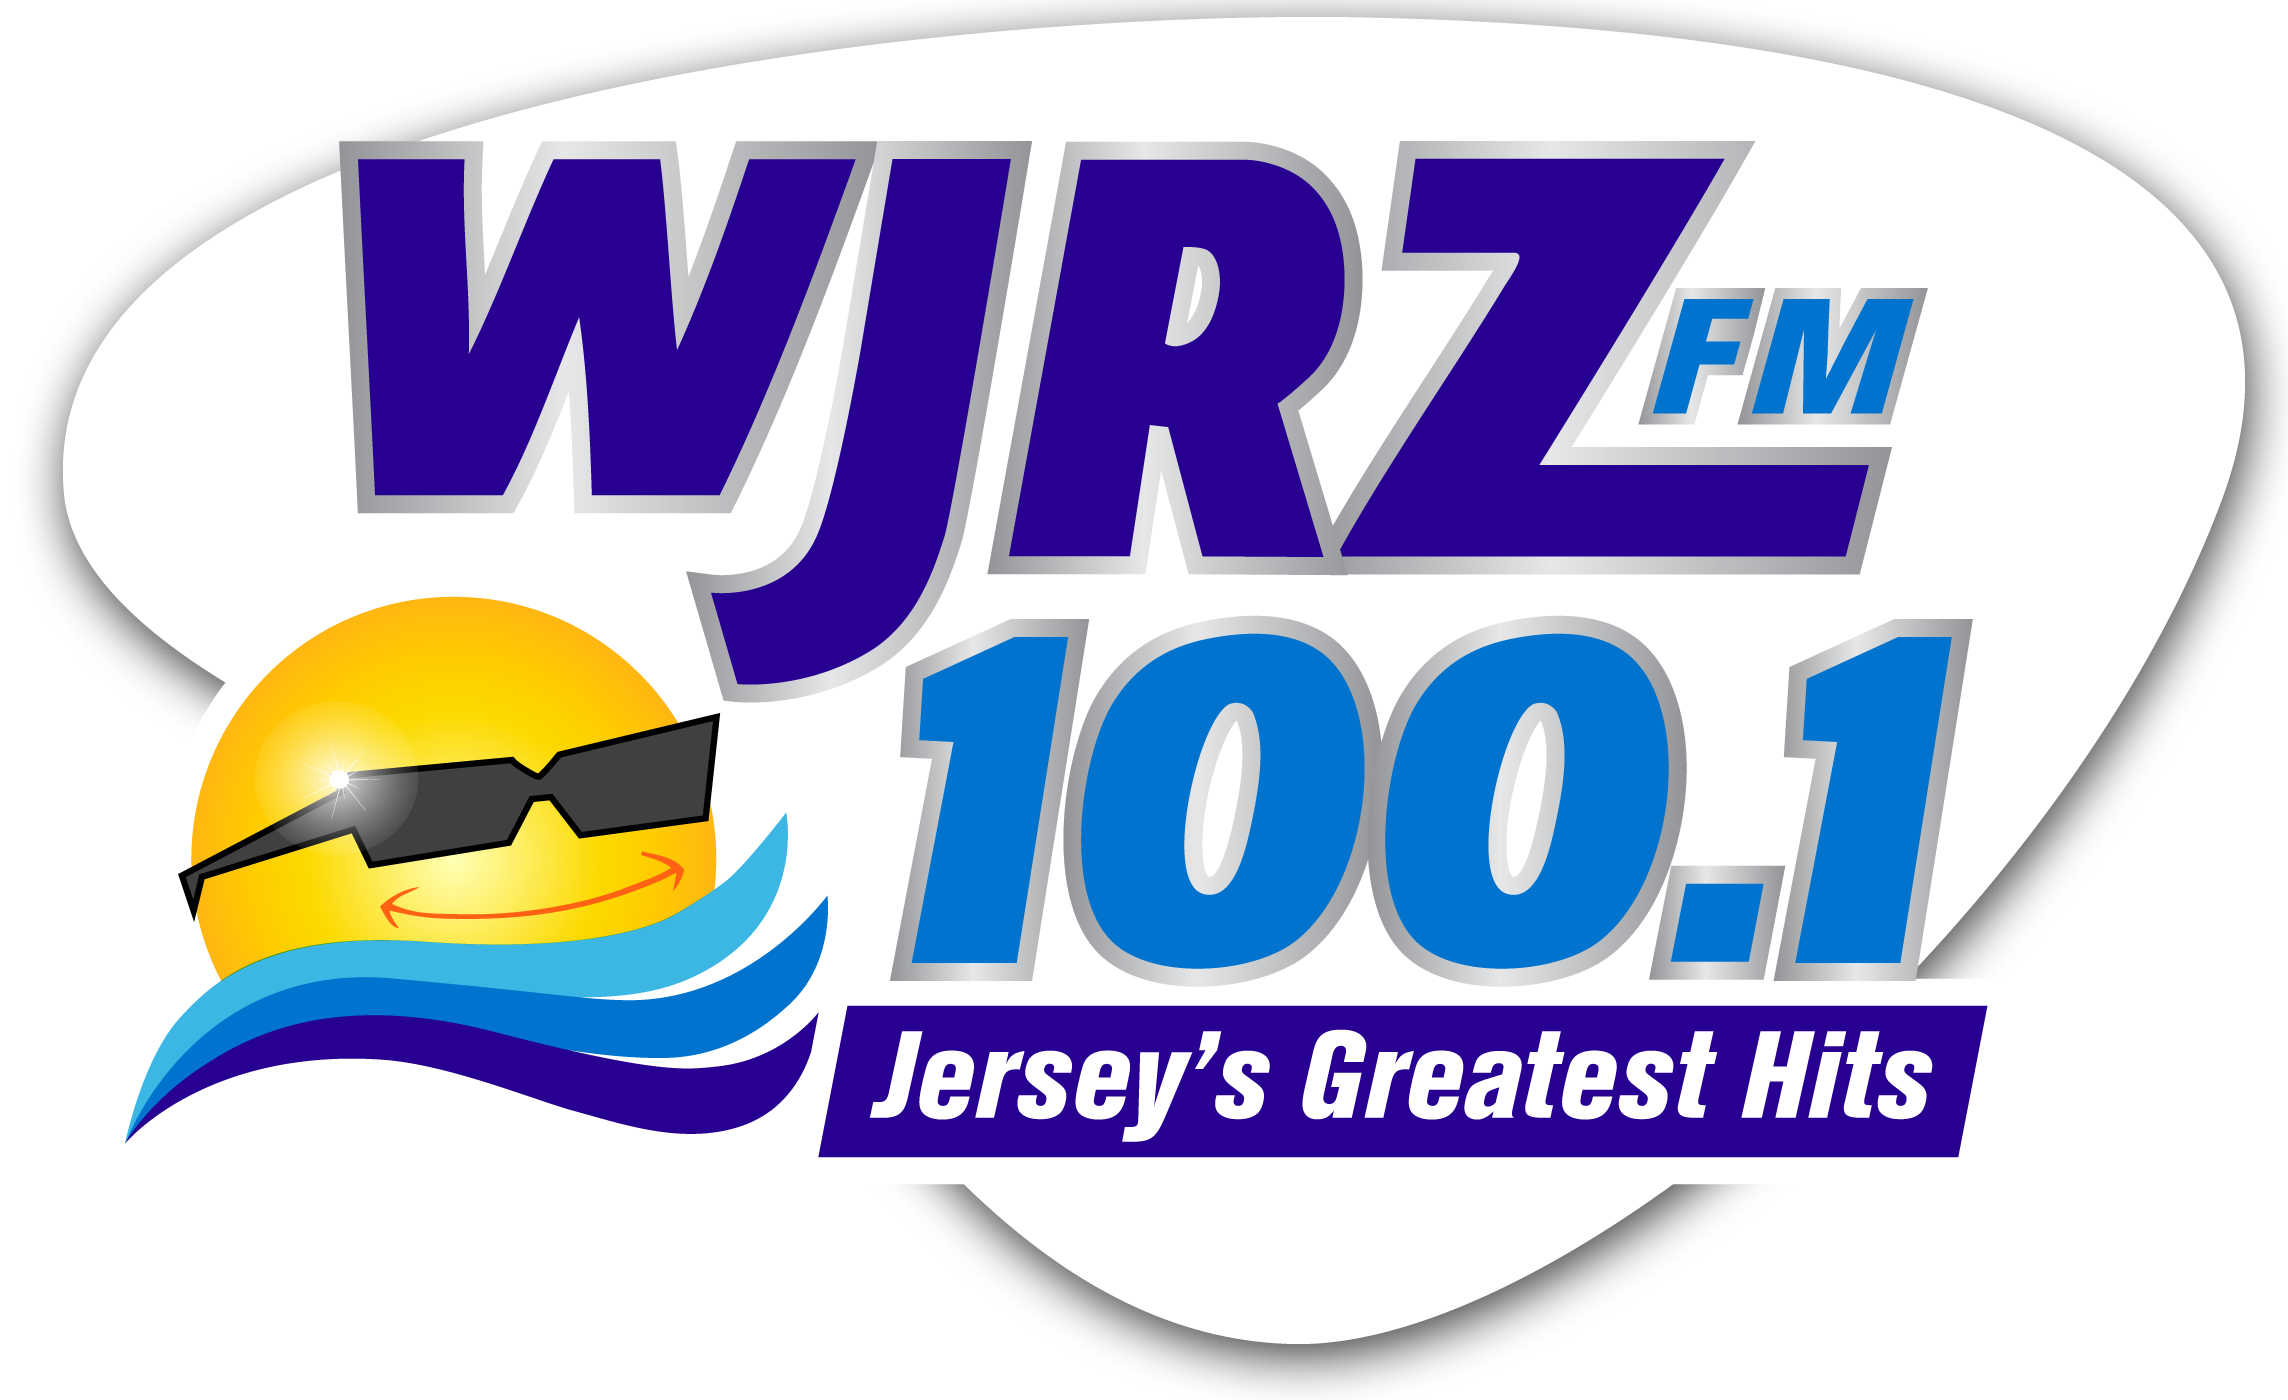 WJRZ | Jersey's Greatest Hits